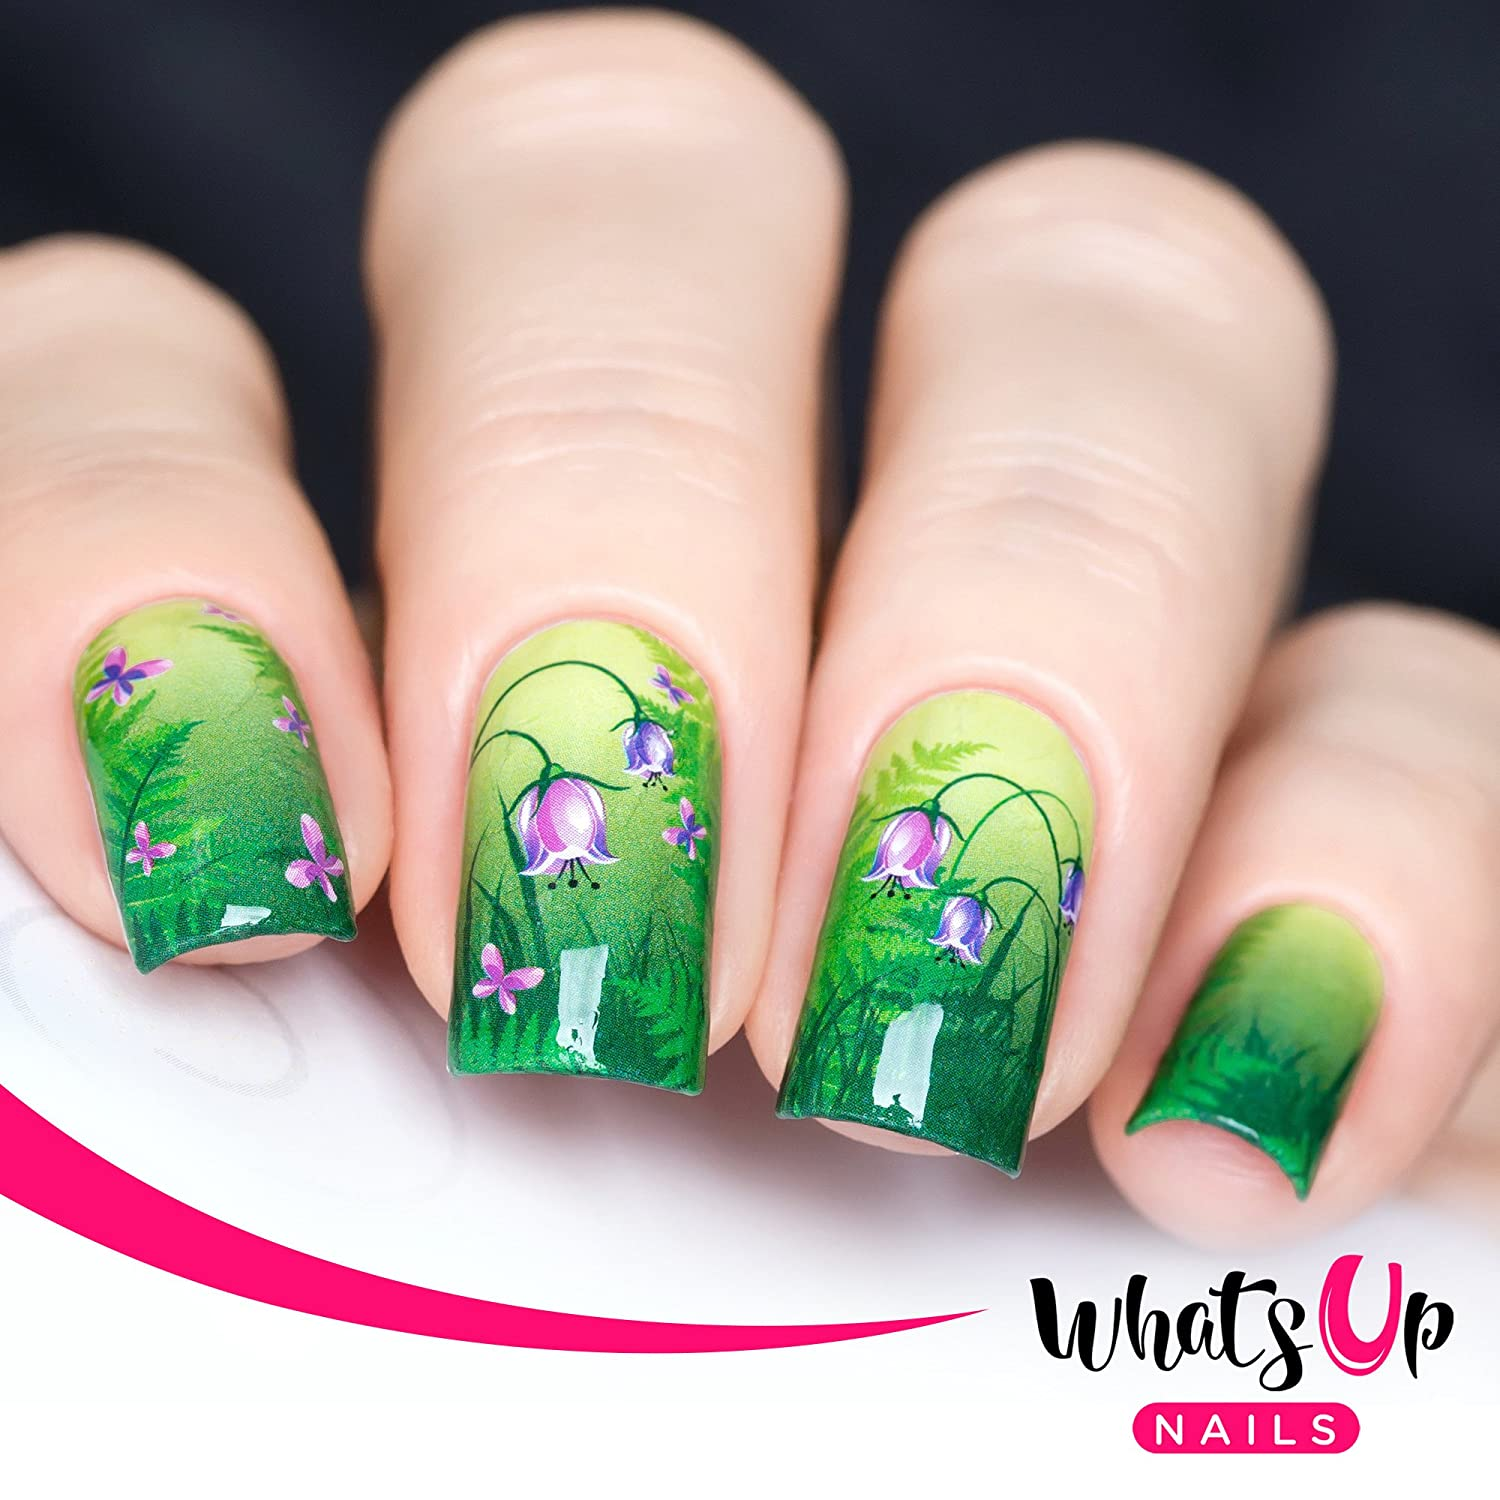 Whats Up Nails - P035 Spring Medley Water Decals Sliders for ...